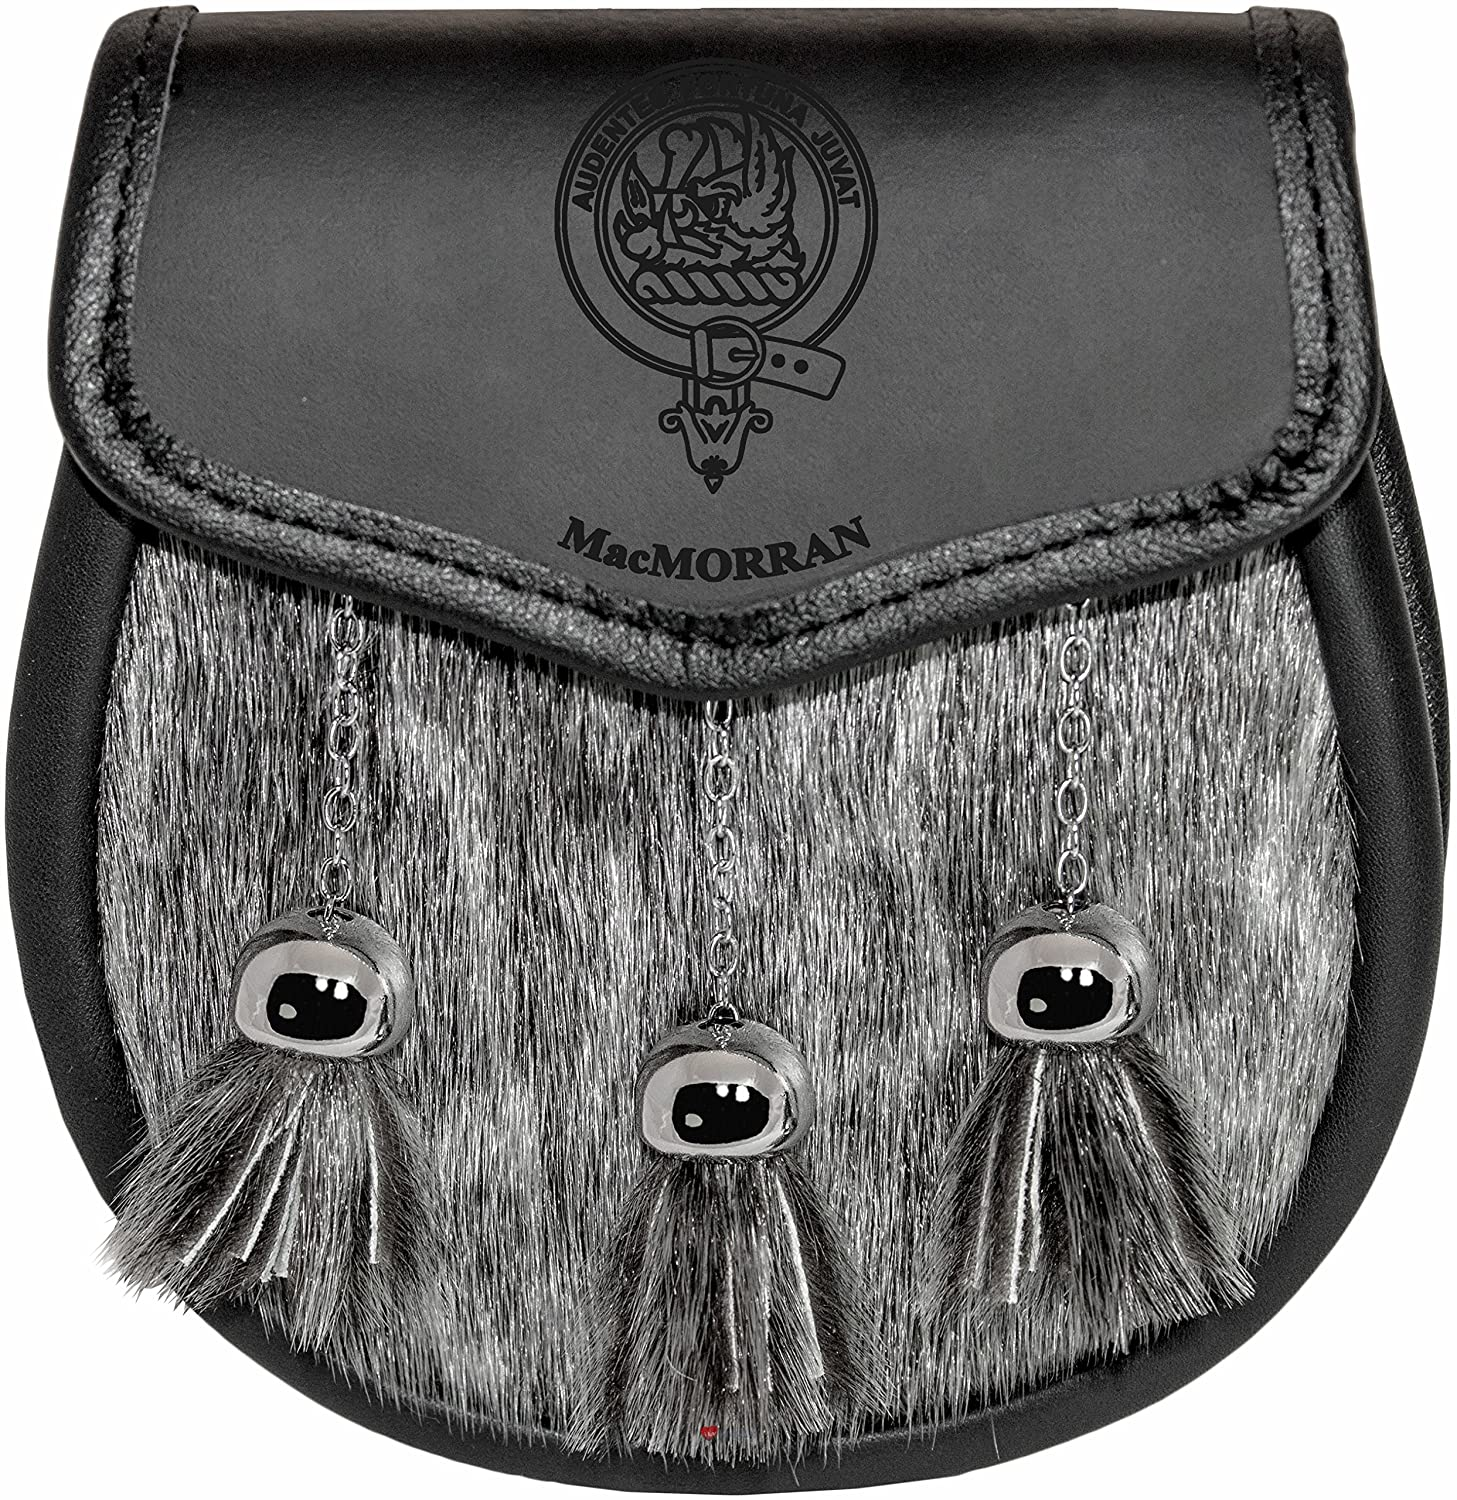 MacMorran Semi Sporran Fur Plain Leather Flap Scottish Clan Crest